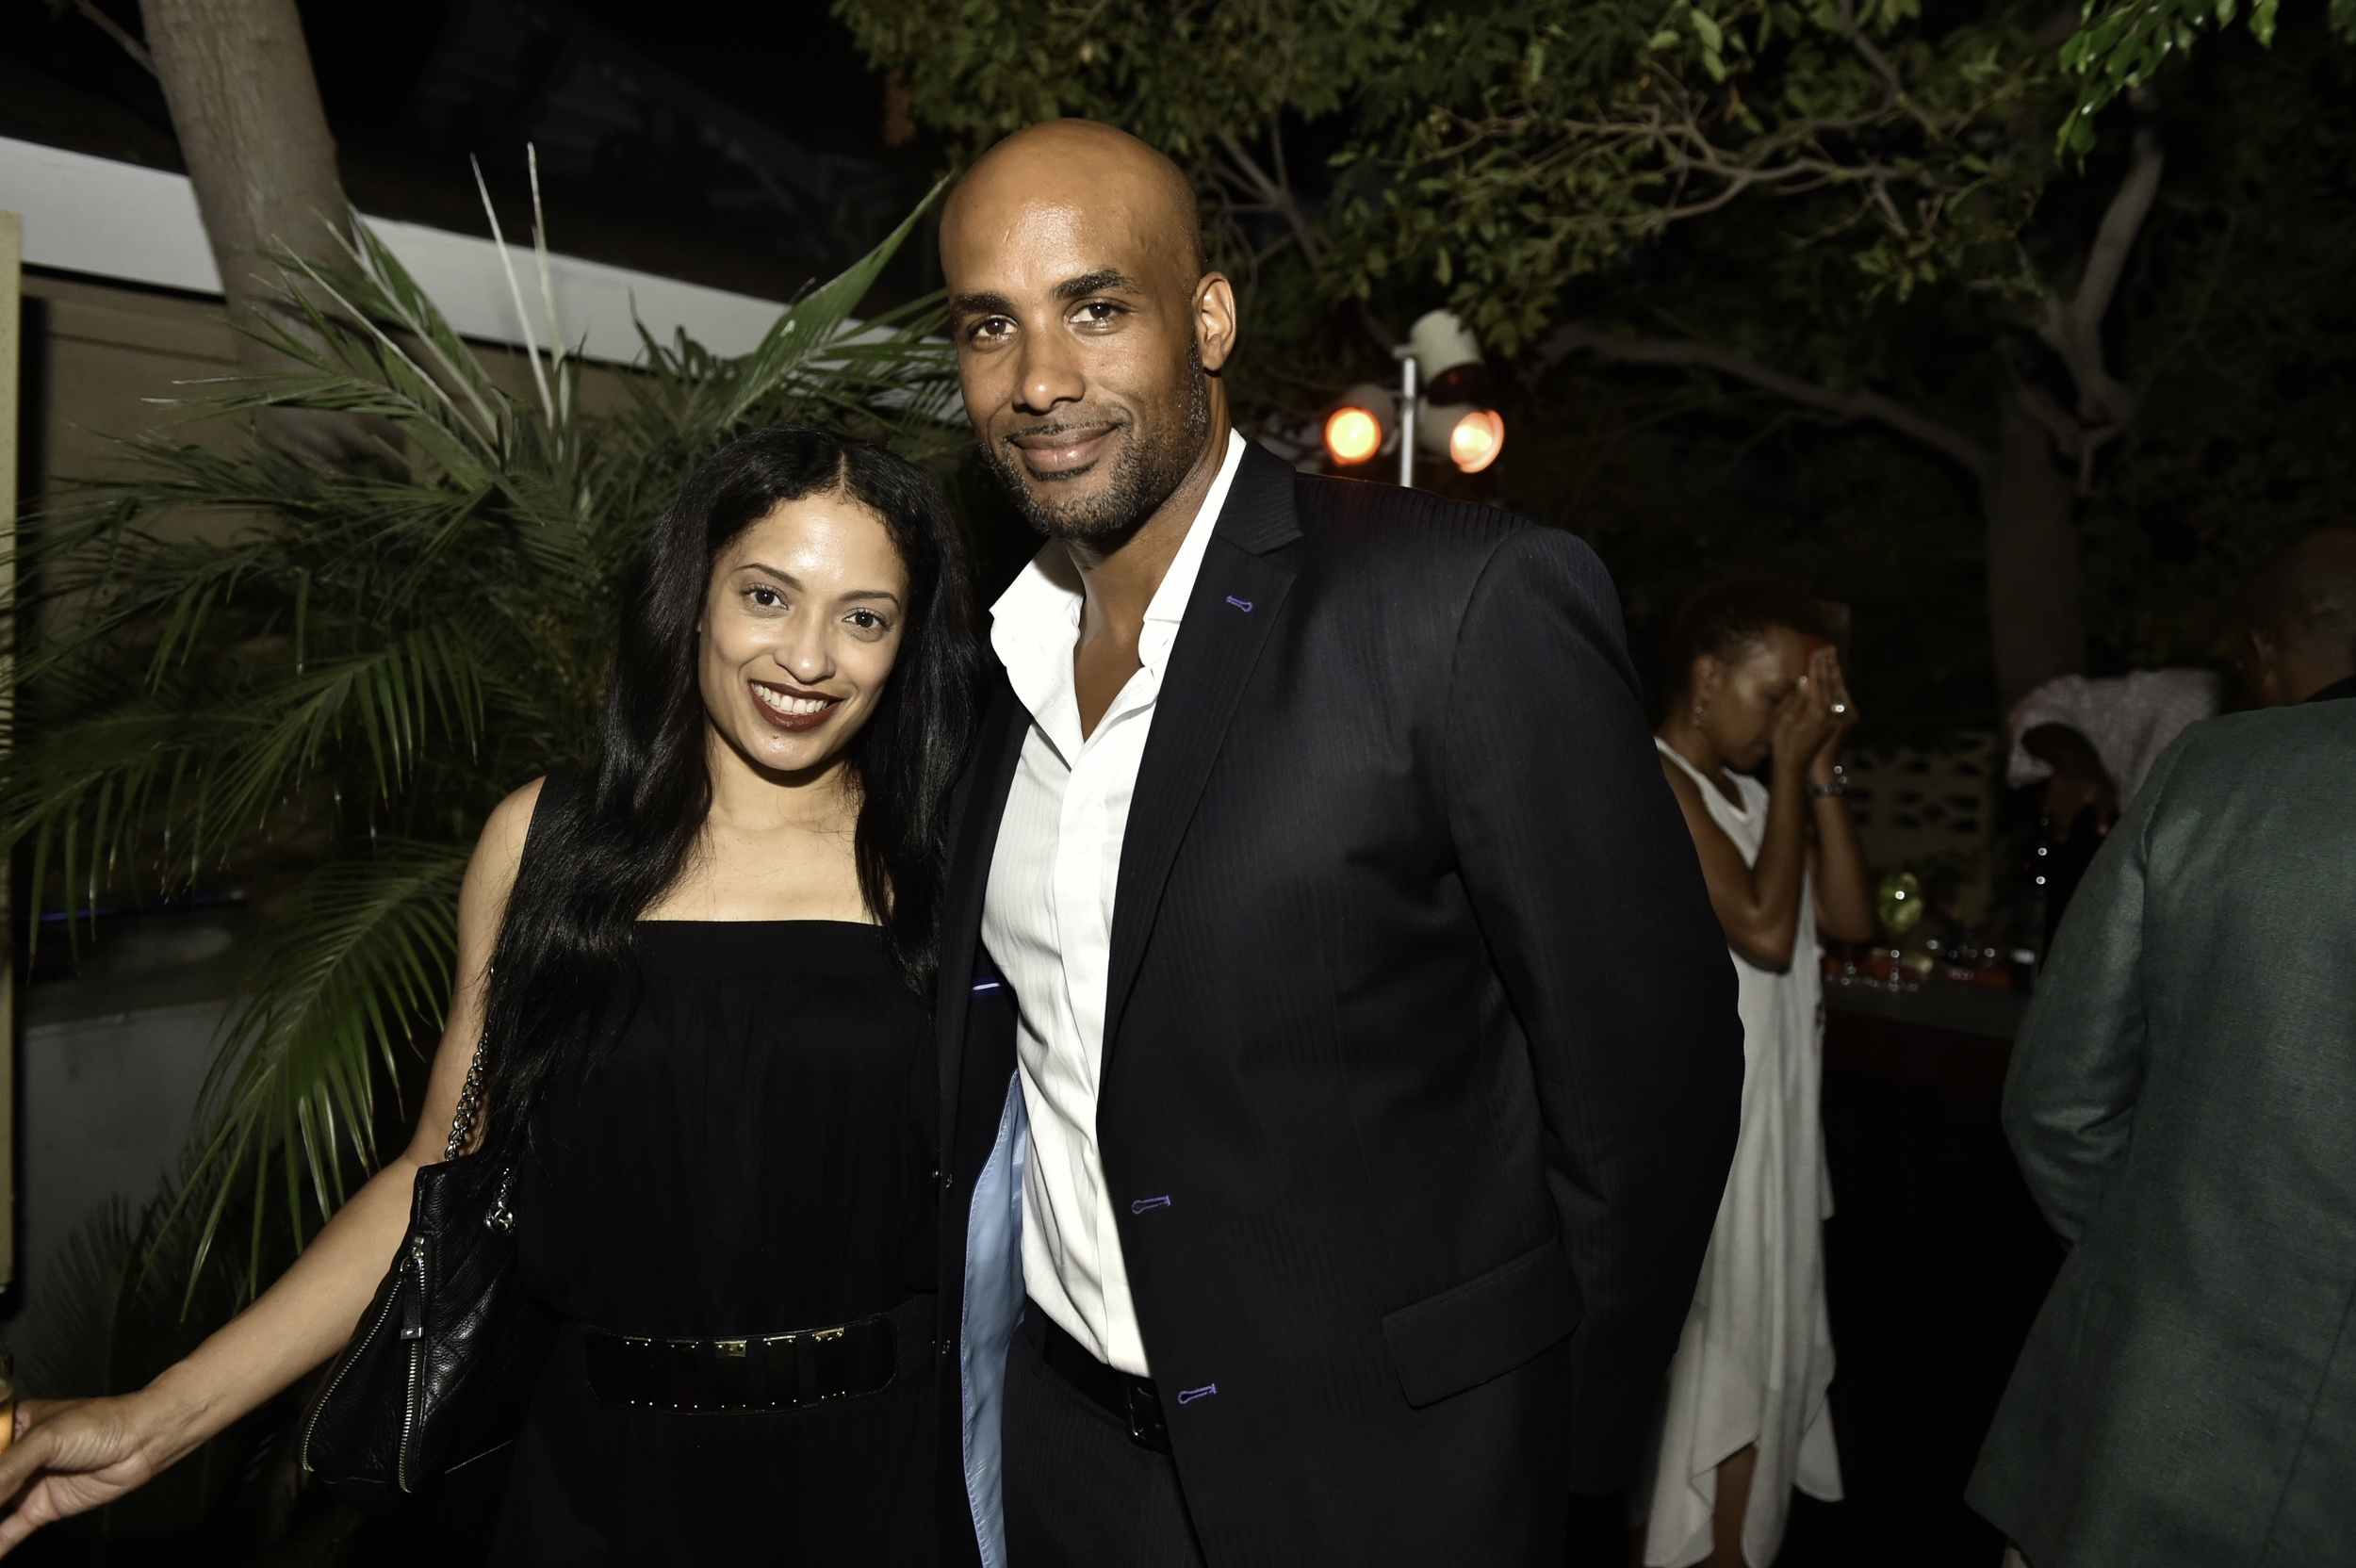 Caption: Actress Melissa De Sousa and Boris Kodjoe at the Kickstarter launch party for FUTURE AMERICAN DREAM. Photographs by Ron Pollard.